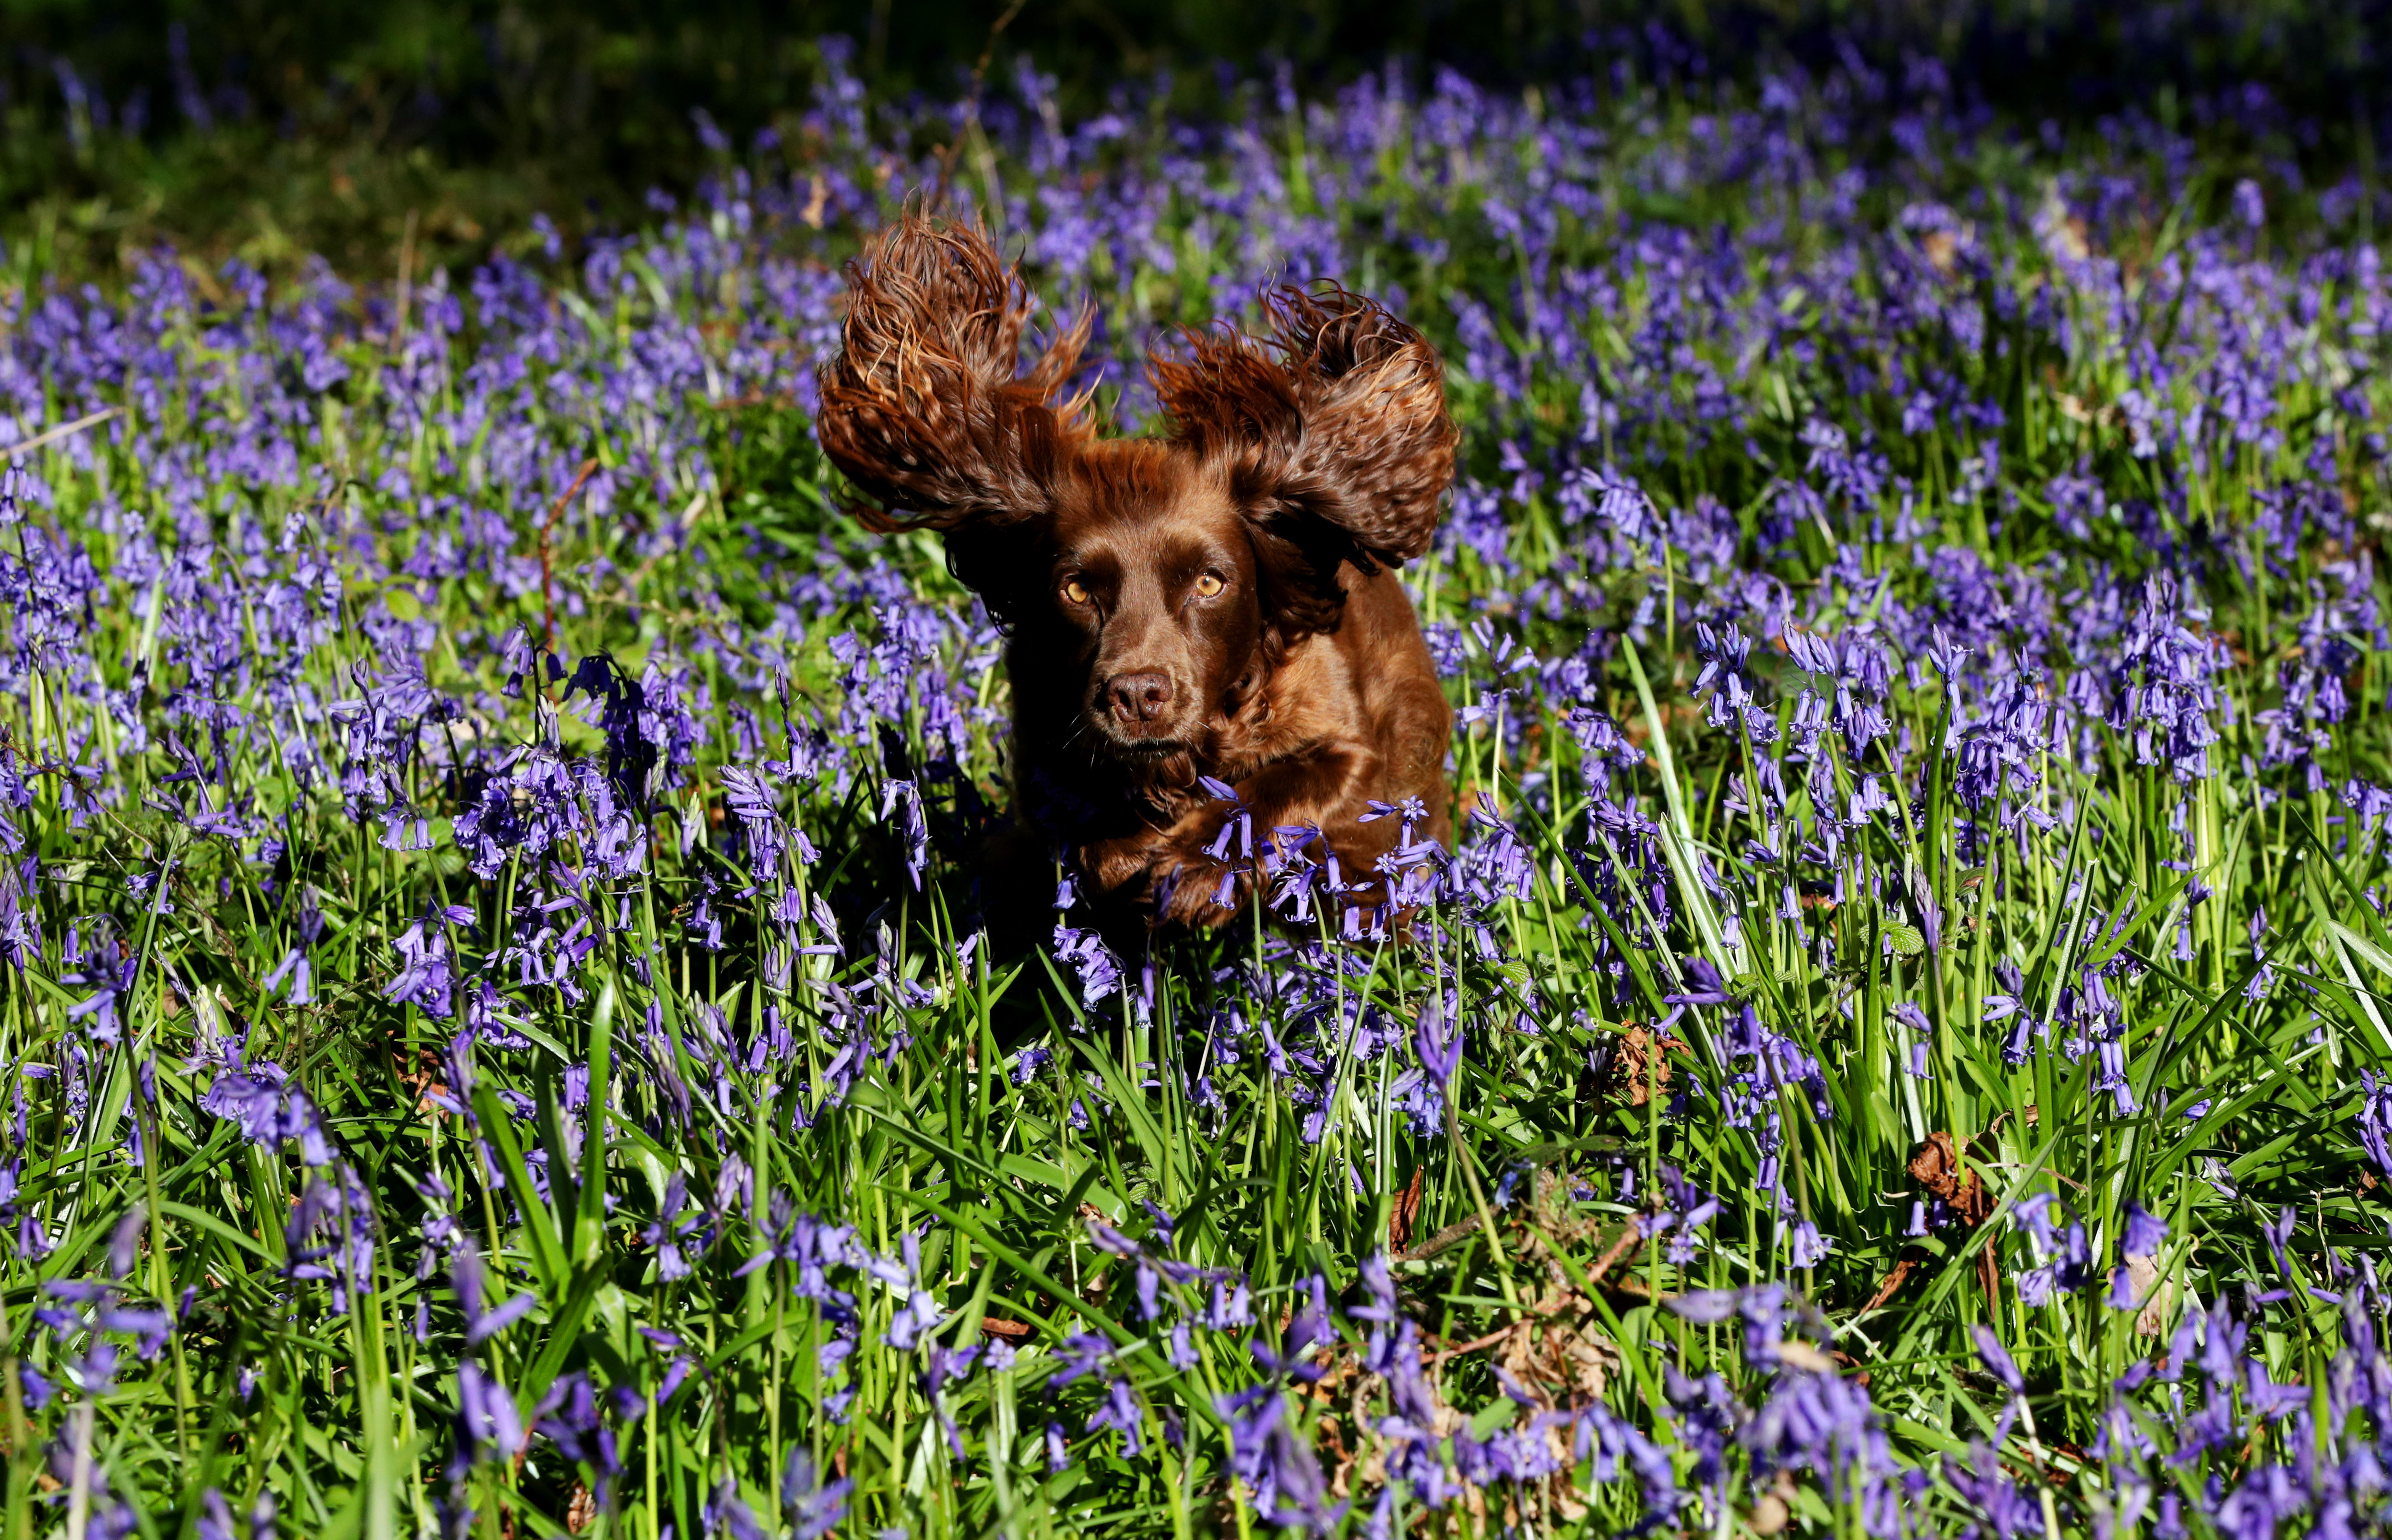 <p>A spaniel named 'Pickle' jumps through a blanket of bluebells near their peak at the National Trust's Basildon Park near Goring-on-Thames in Berkshire, where careful management of the estate's ancient woodland by trust staff and volunteers enables the bluebells to thrive. Picture date: Thursday April 22, 2021.</p>